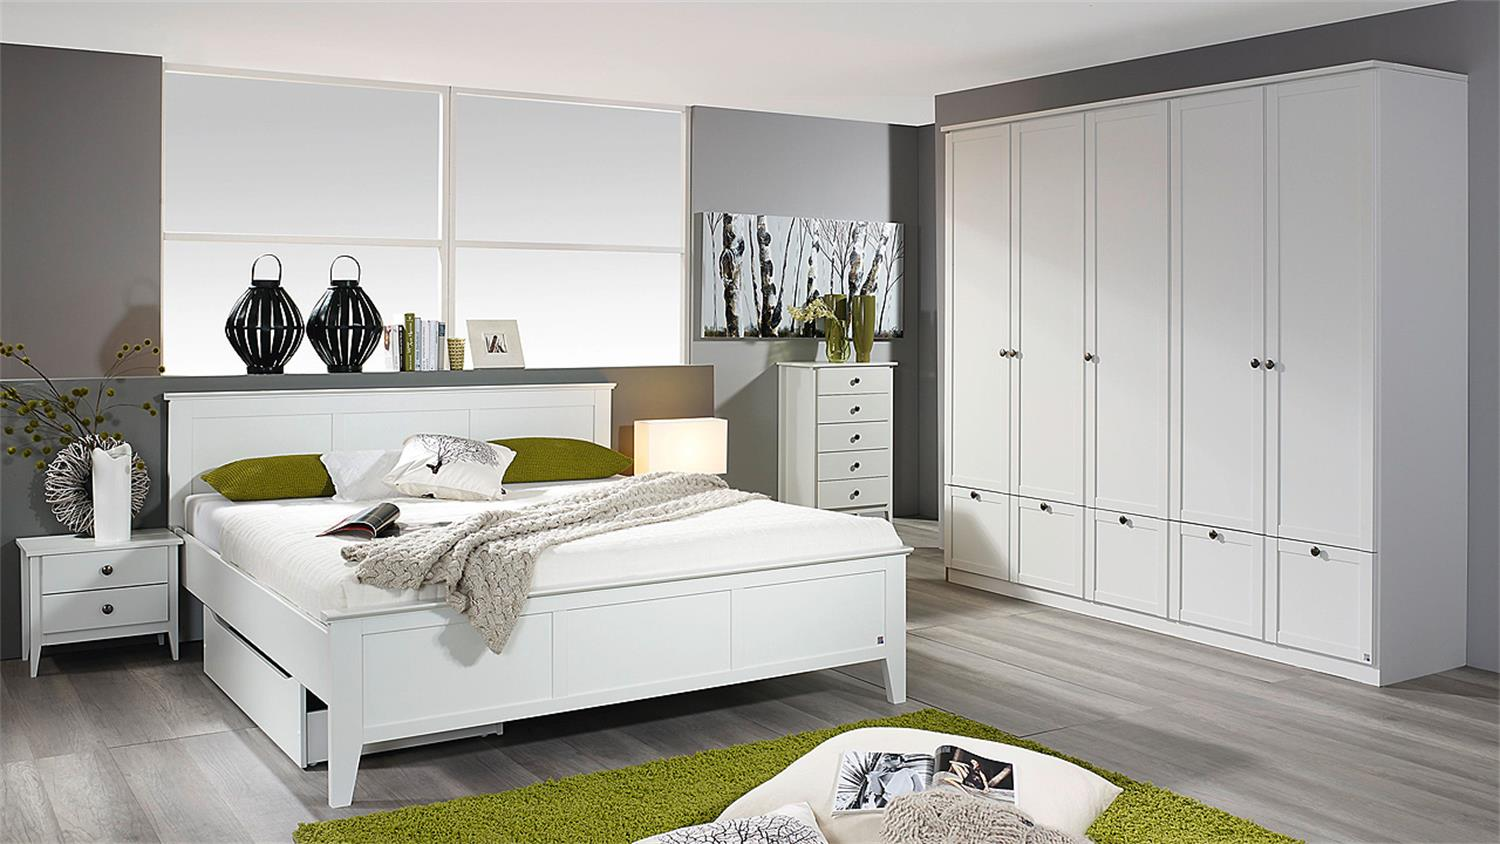 mbelhaus rosenheim fabulous cheap weko wohnen rosenheim gmbh u co kg with weko wohnen gmbh with. Black Bedroom Furniture Sets. Home Design Ideas